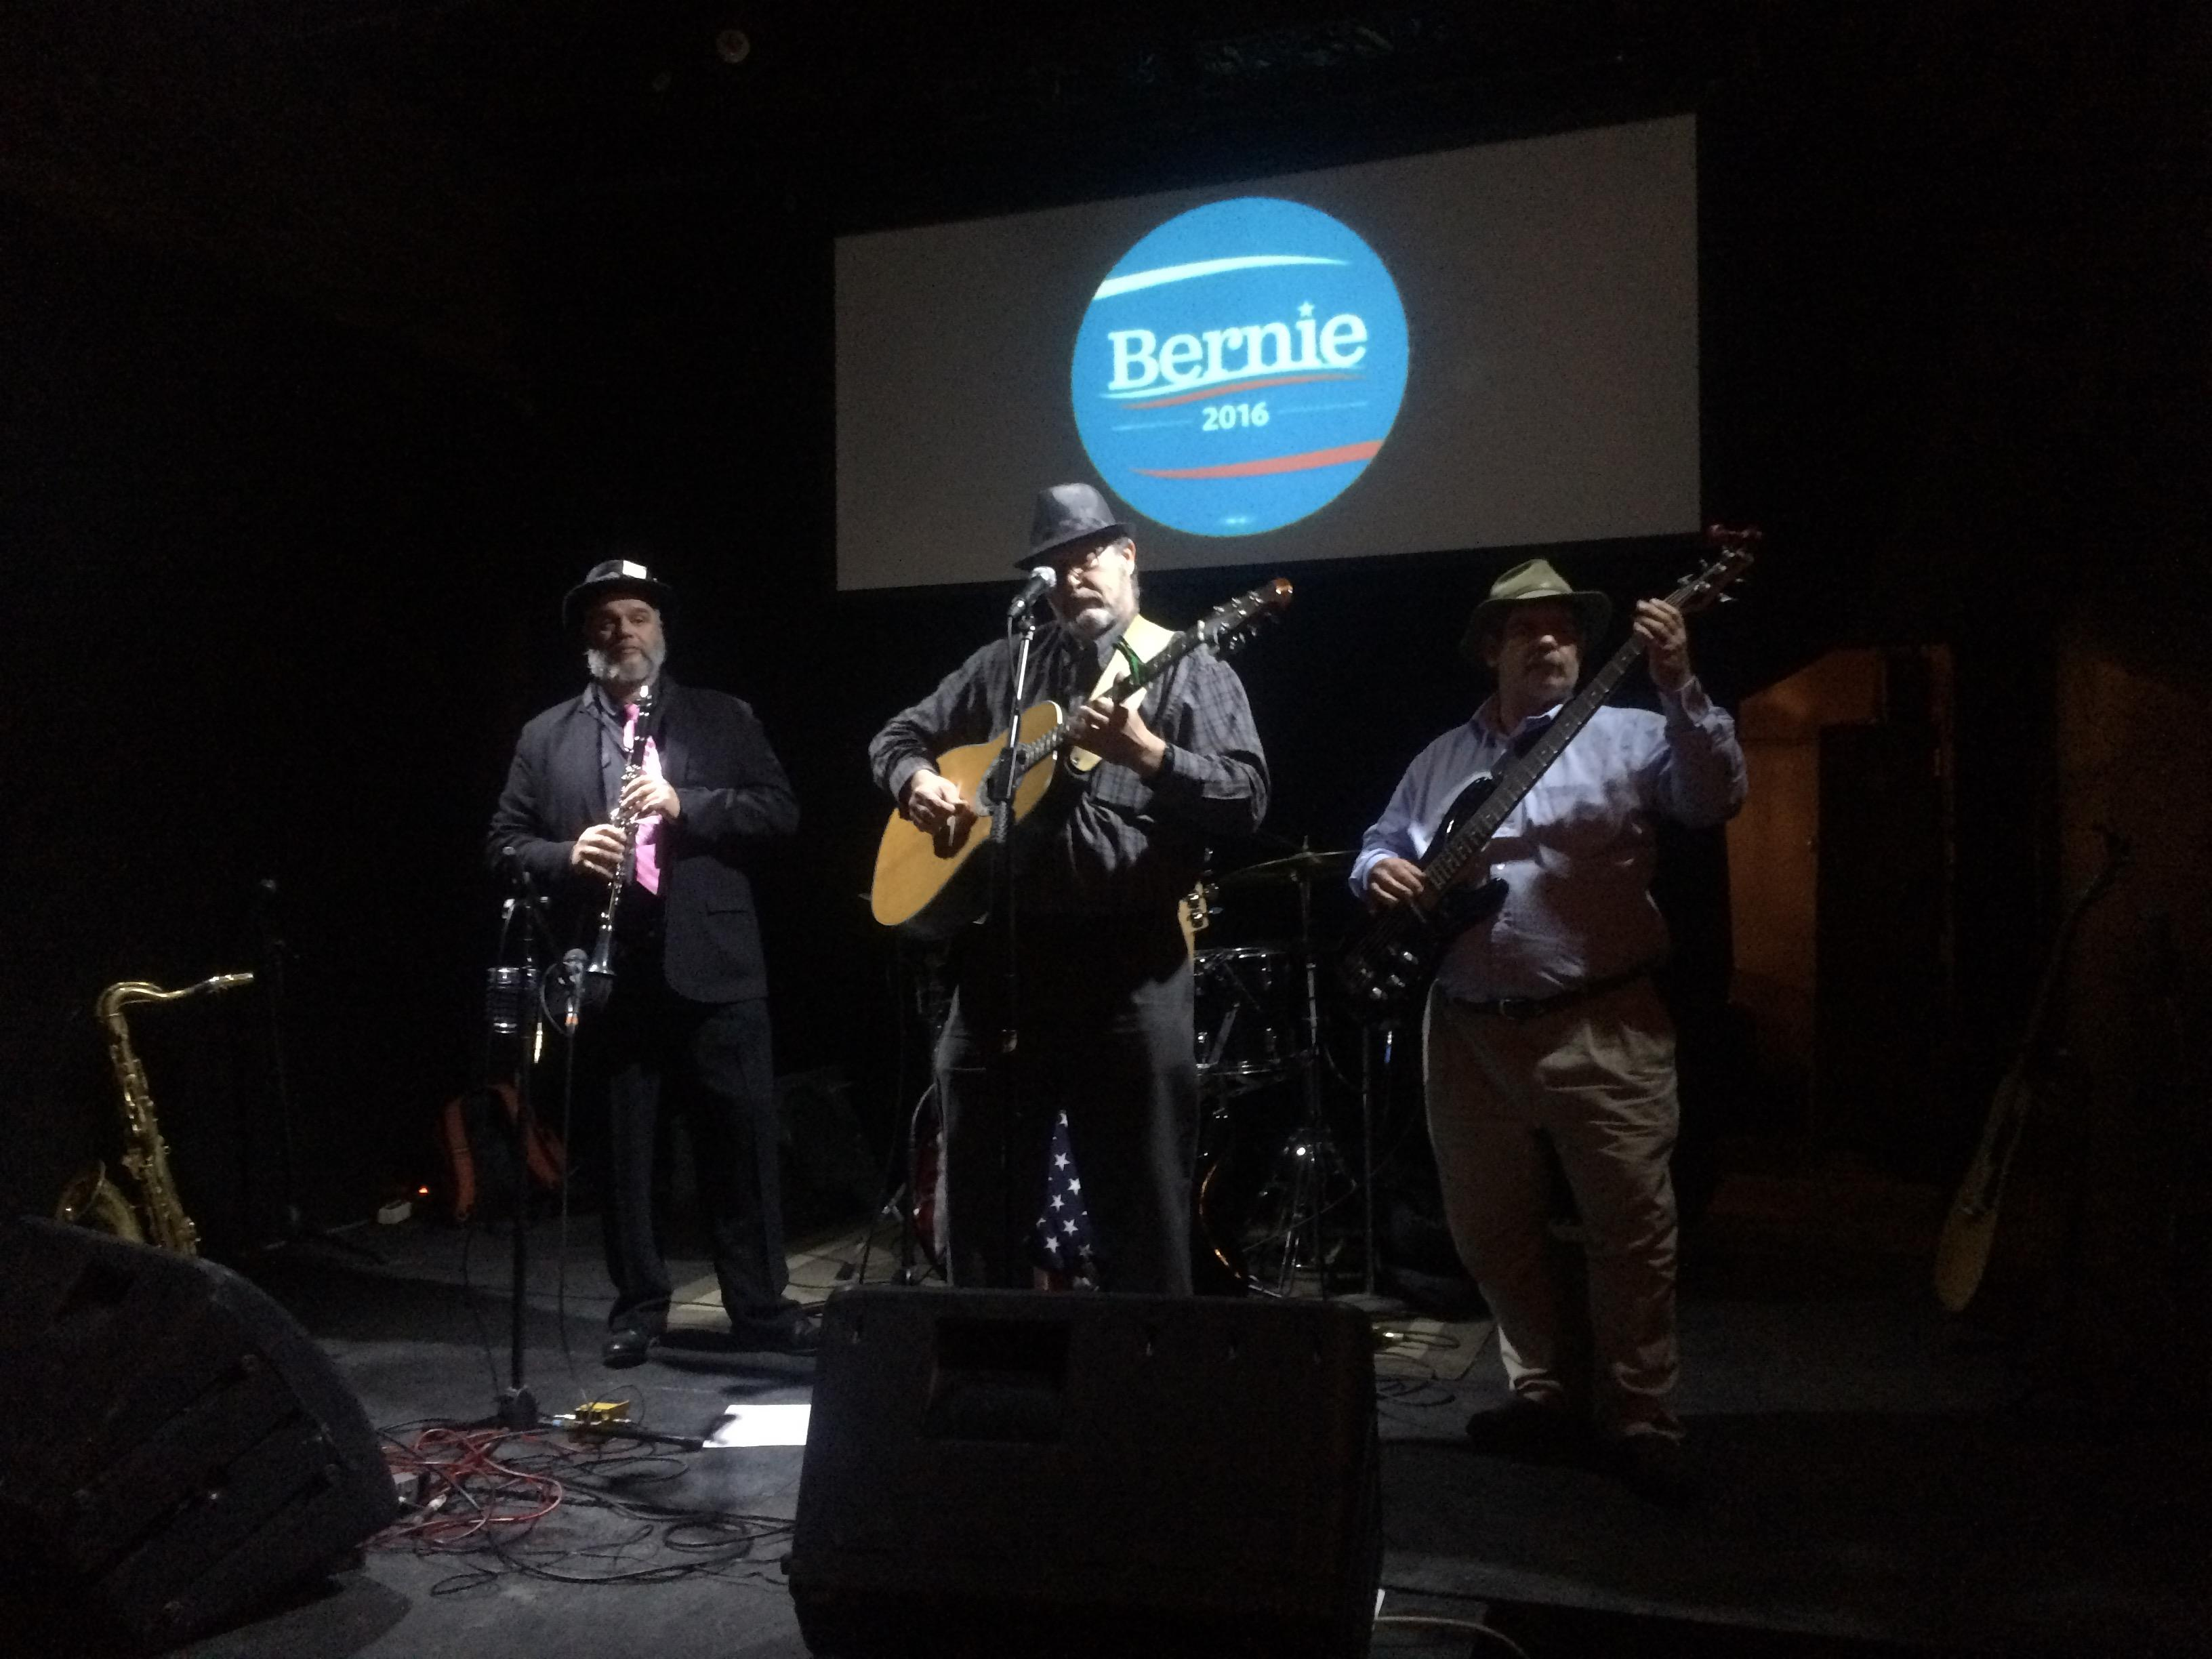 Grassroots campaign, Bands for Bernie, reaches voters through music.